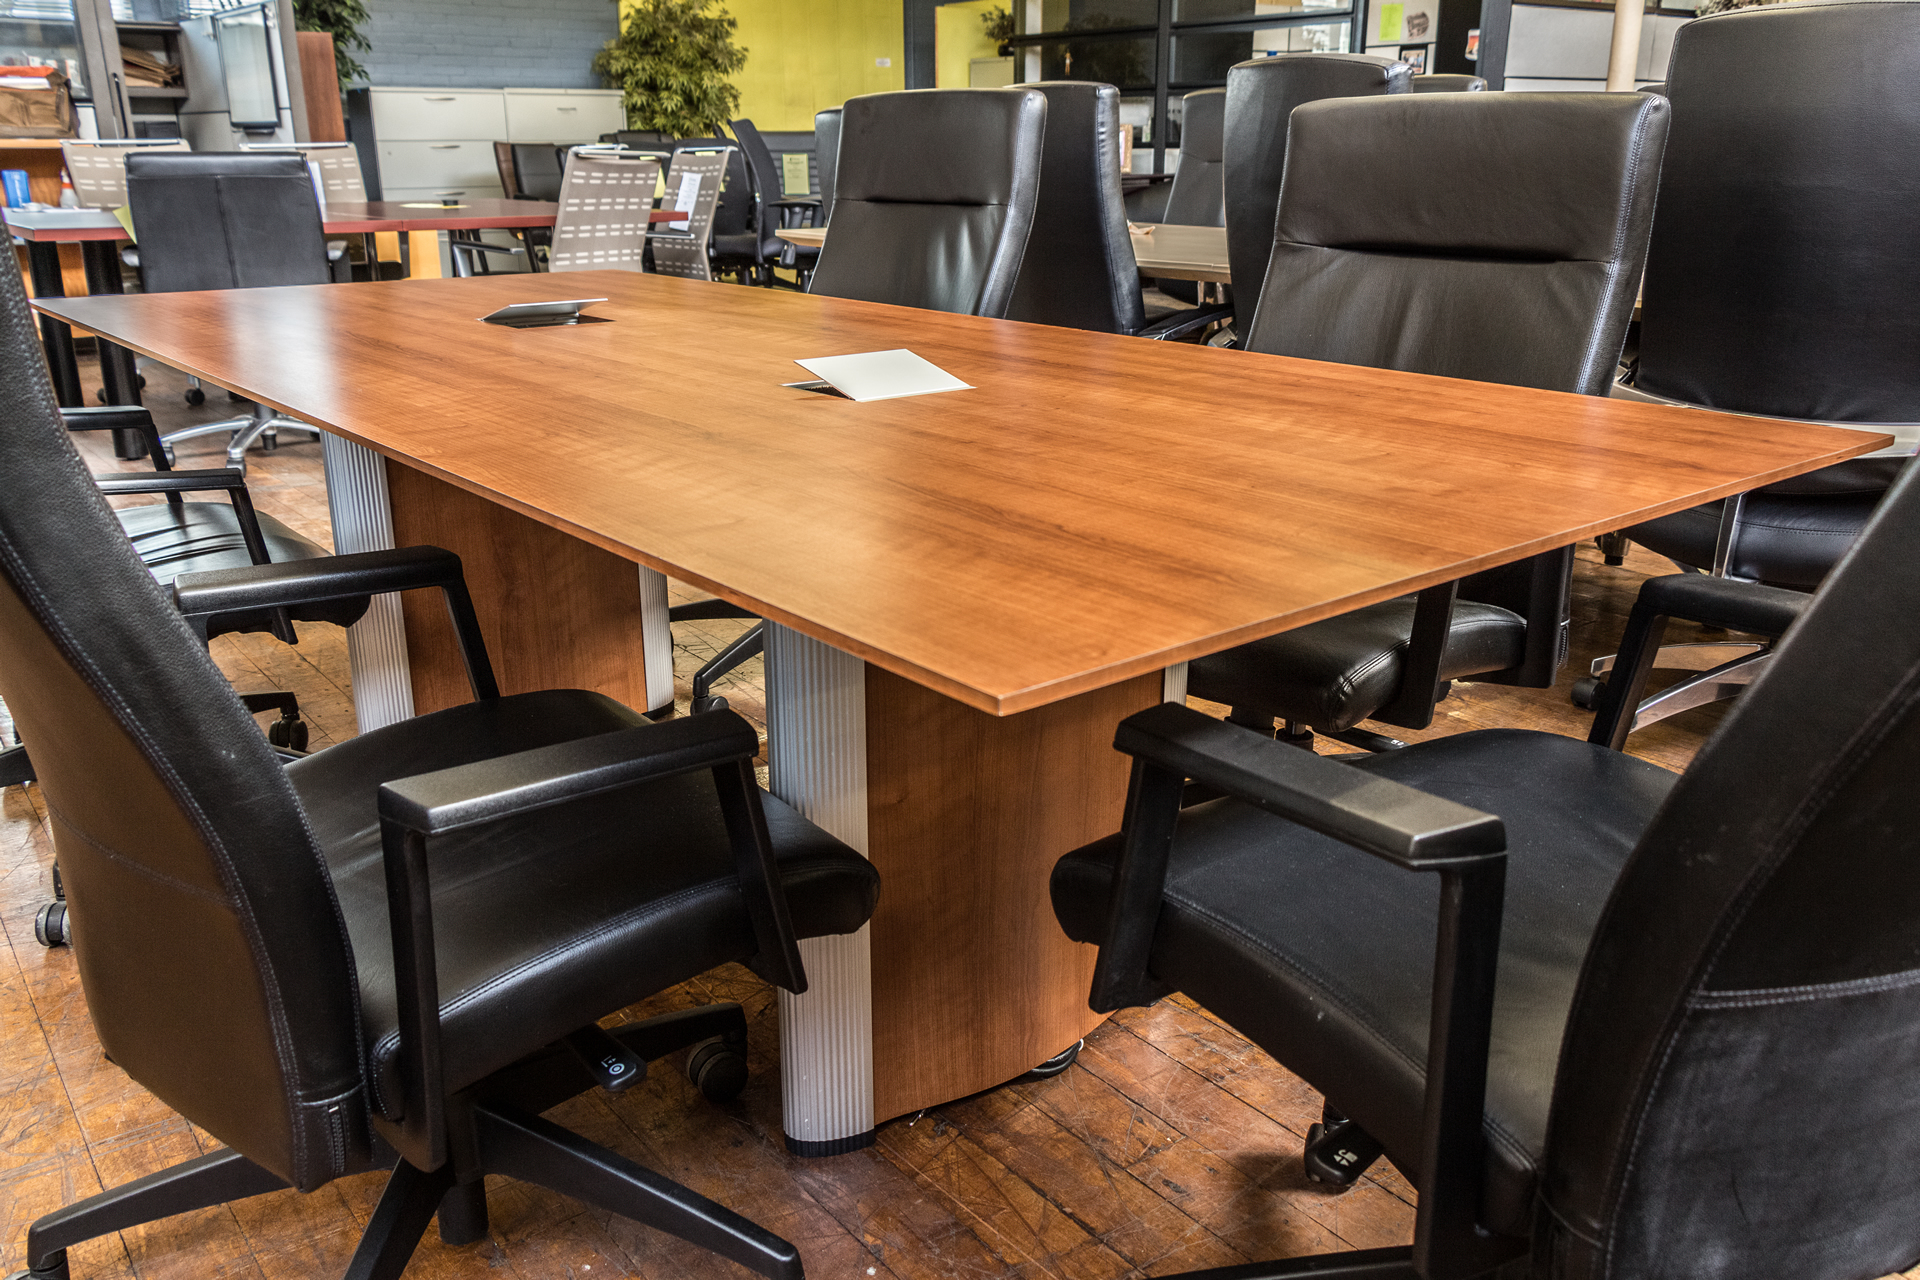 peartreeofficefurniture_peartreeofficefurniture_peartreeofficefurniture_nienkamper-vox-8-x-3-5-cherry-laminate-tapered-edge-conference-table-8.jpg